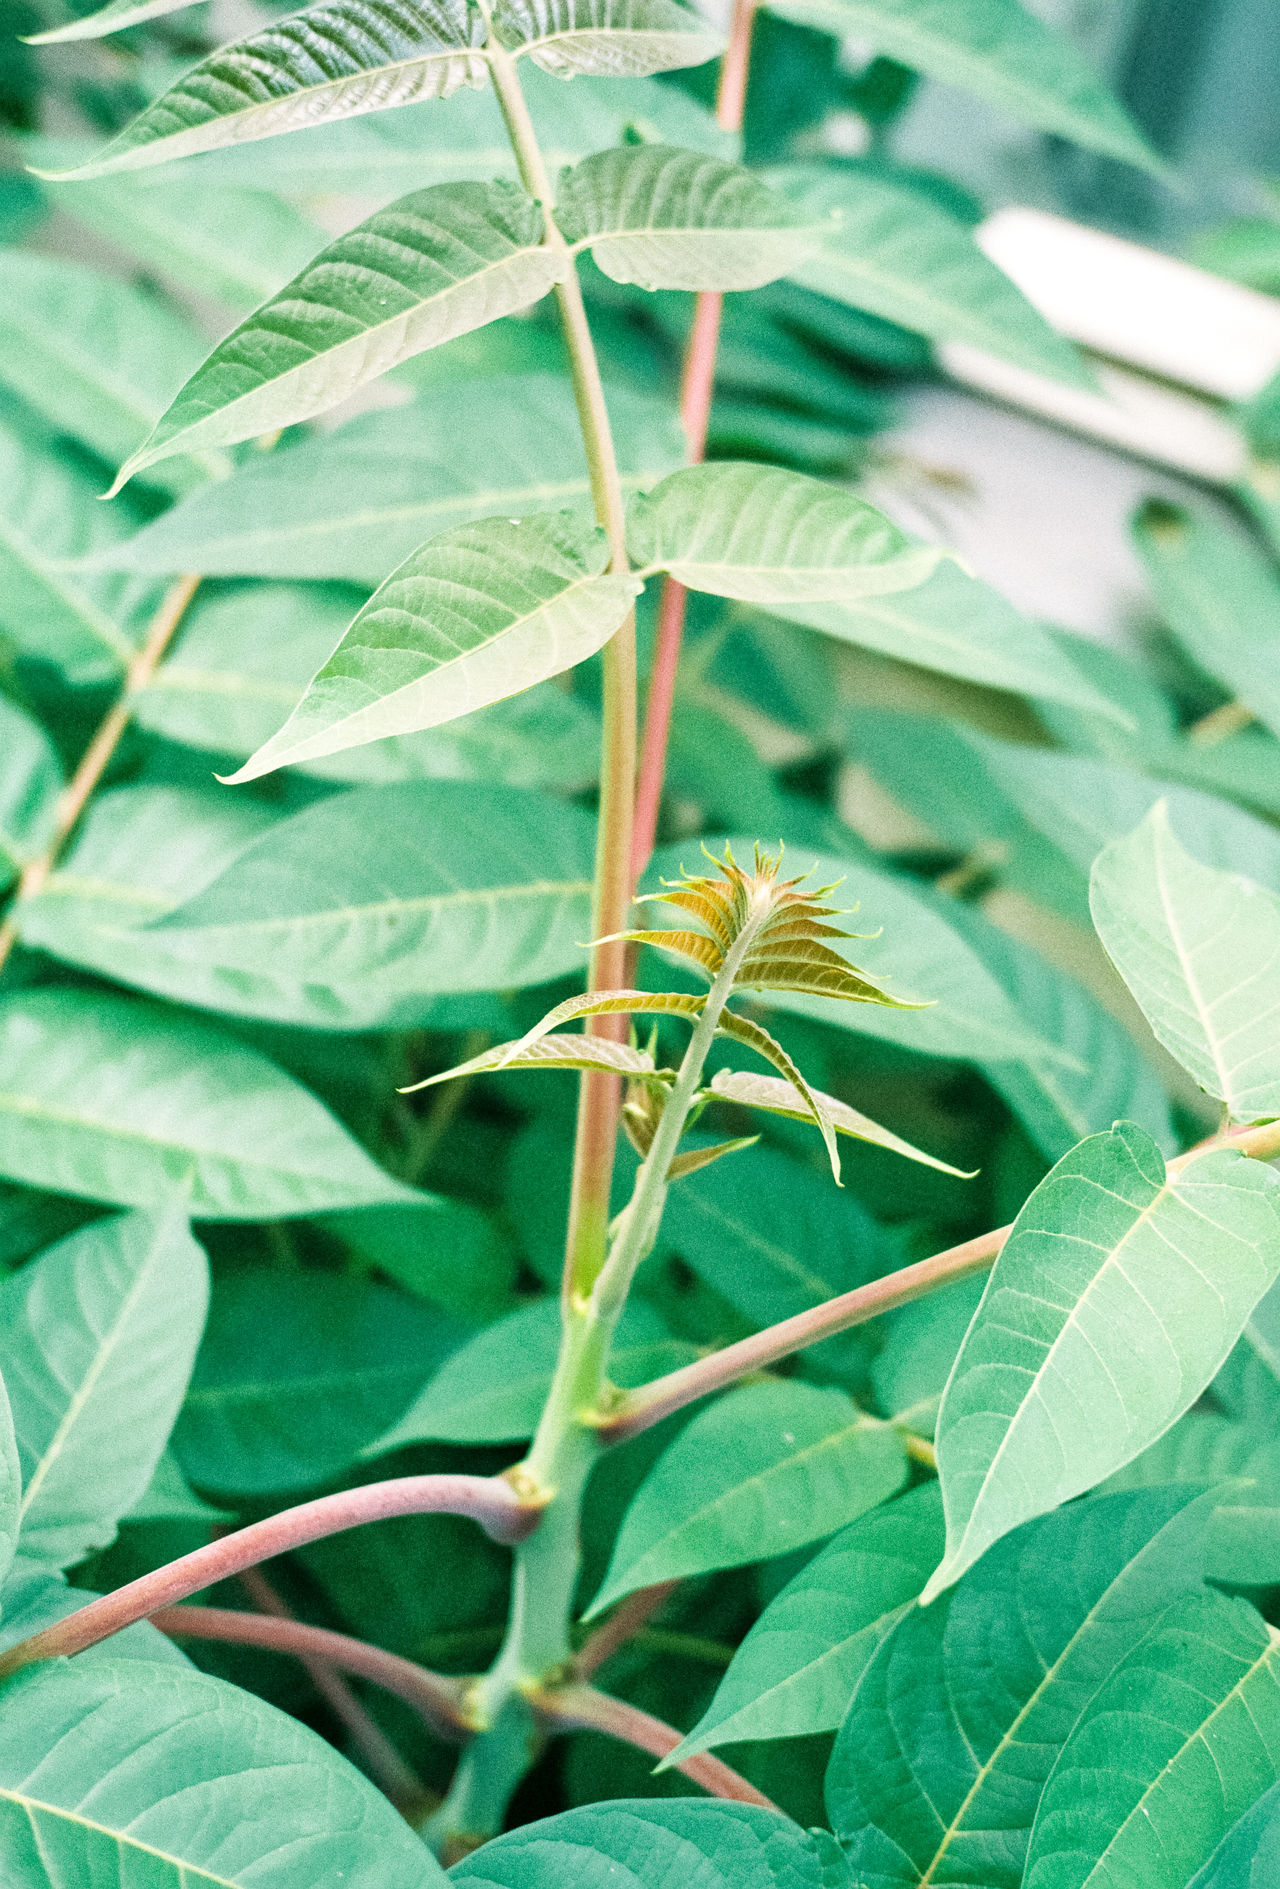 35mm Film Analog Analogue Photography Animal Themes Animal Wildlife Animals In The Wild Beauty In Nature Close-up Day Film Photography Filmisnotdead Green Green Color Growth Growth Leaf Life Nature Nature No People Outdoors Plant Plant Plants Plants And Flowers